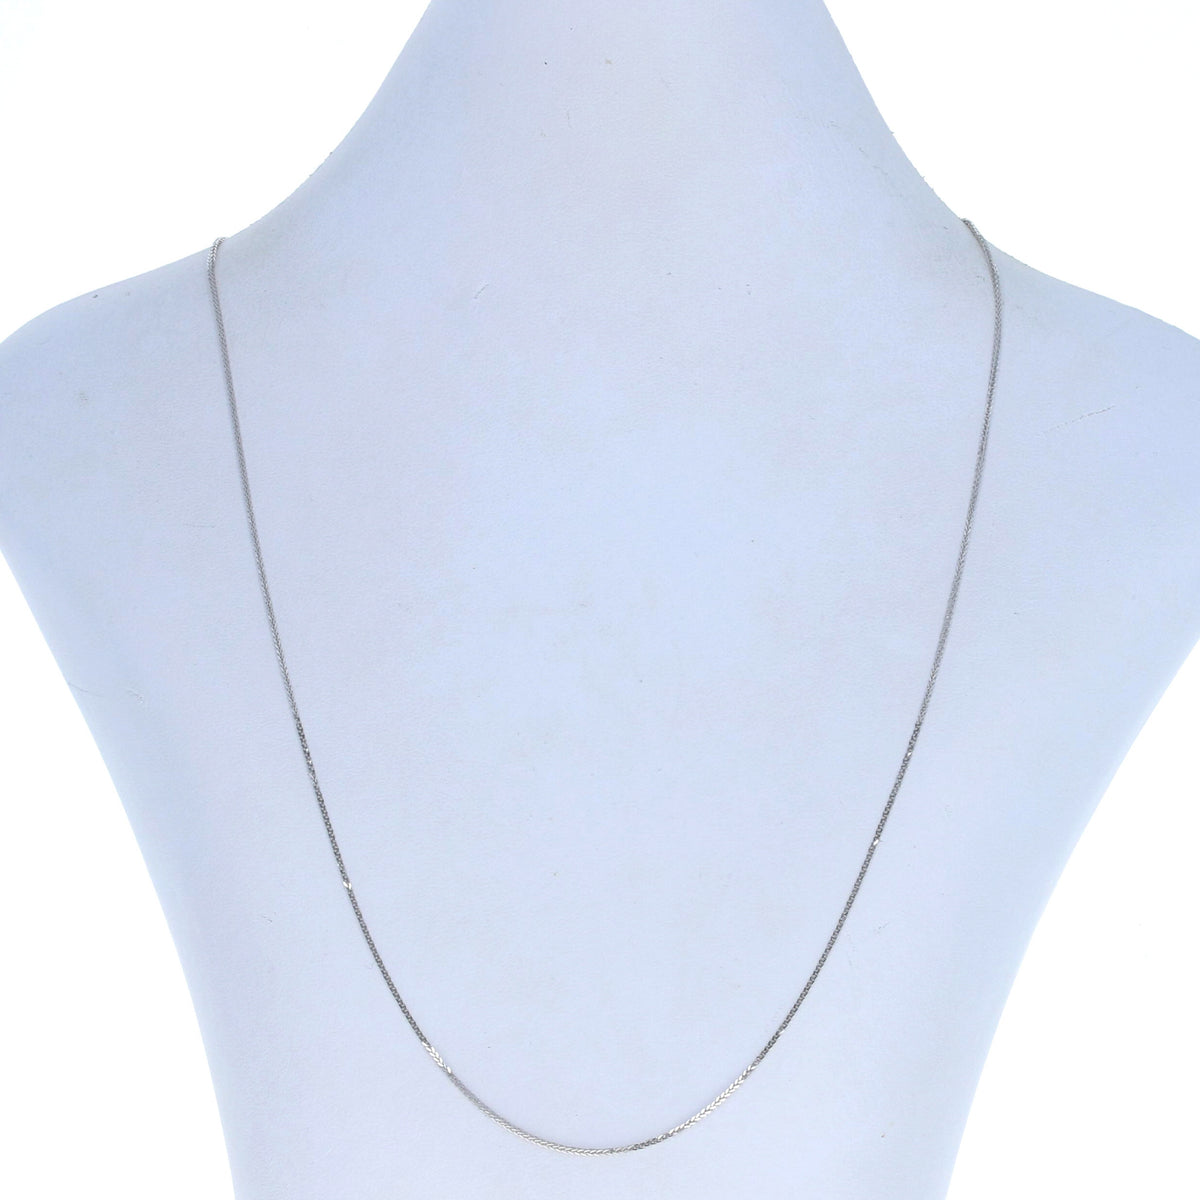 Diamond Cut Squared Wheat Chain Necklace White Gold